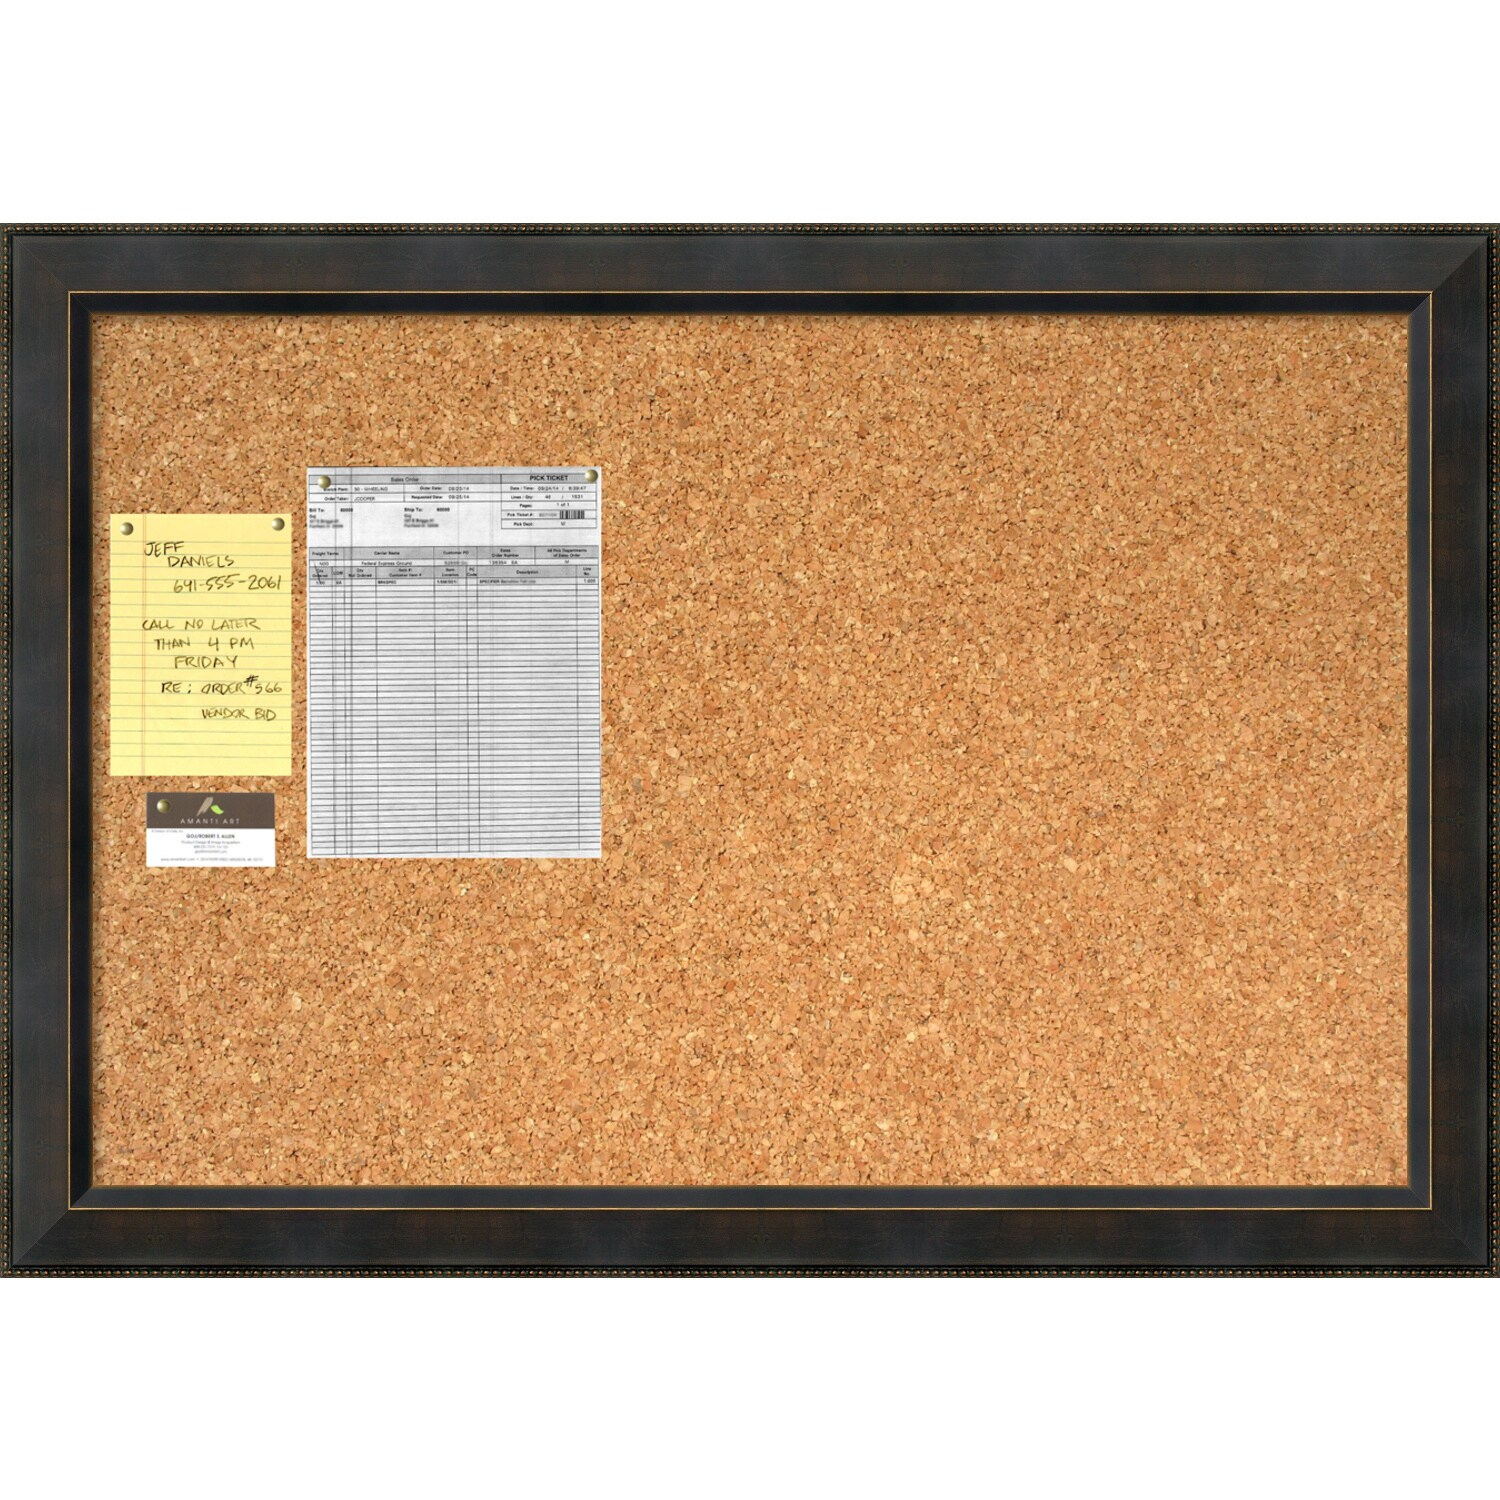 Signore 40 x 28 large message cork boards free shipping today signore 40 x 28 large message cork boards free shipping today overstock 16803992 jeuxipadfo Gallery